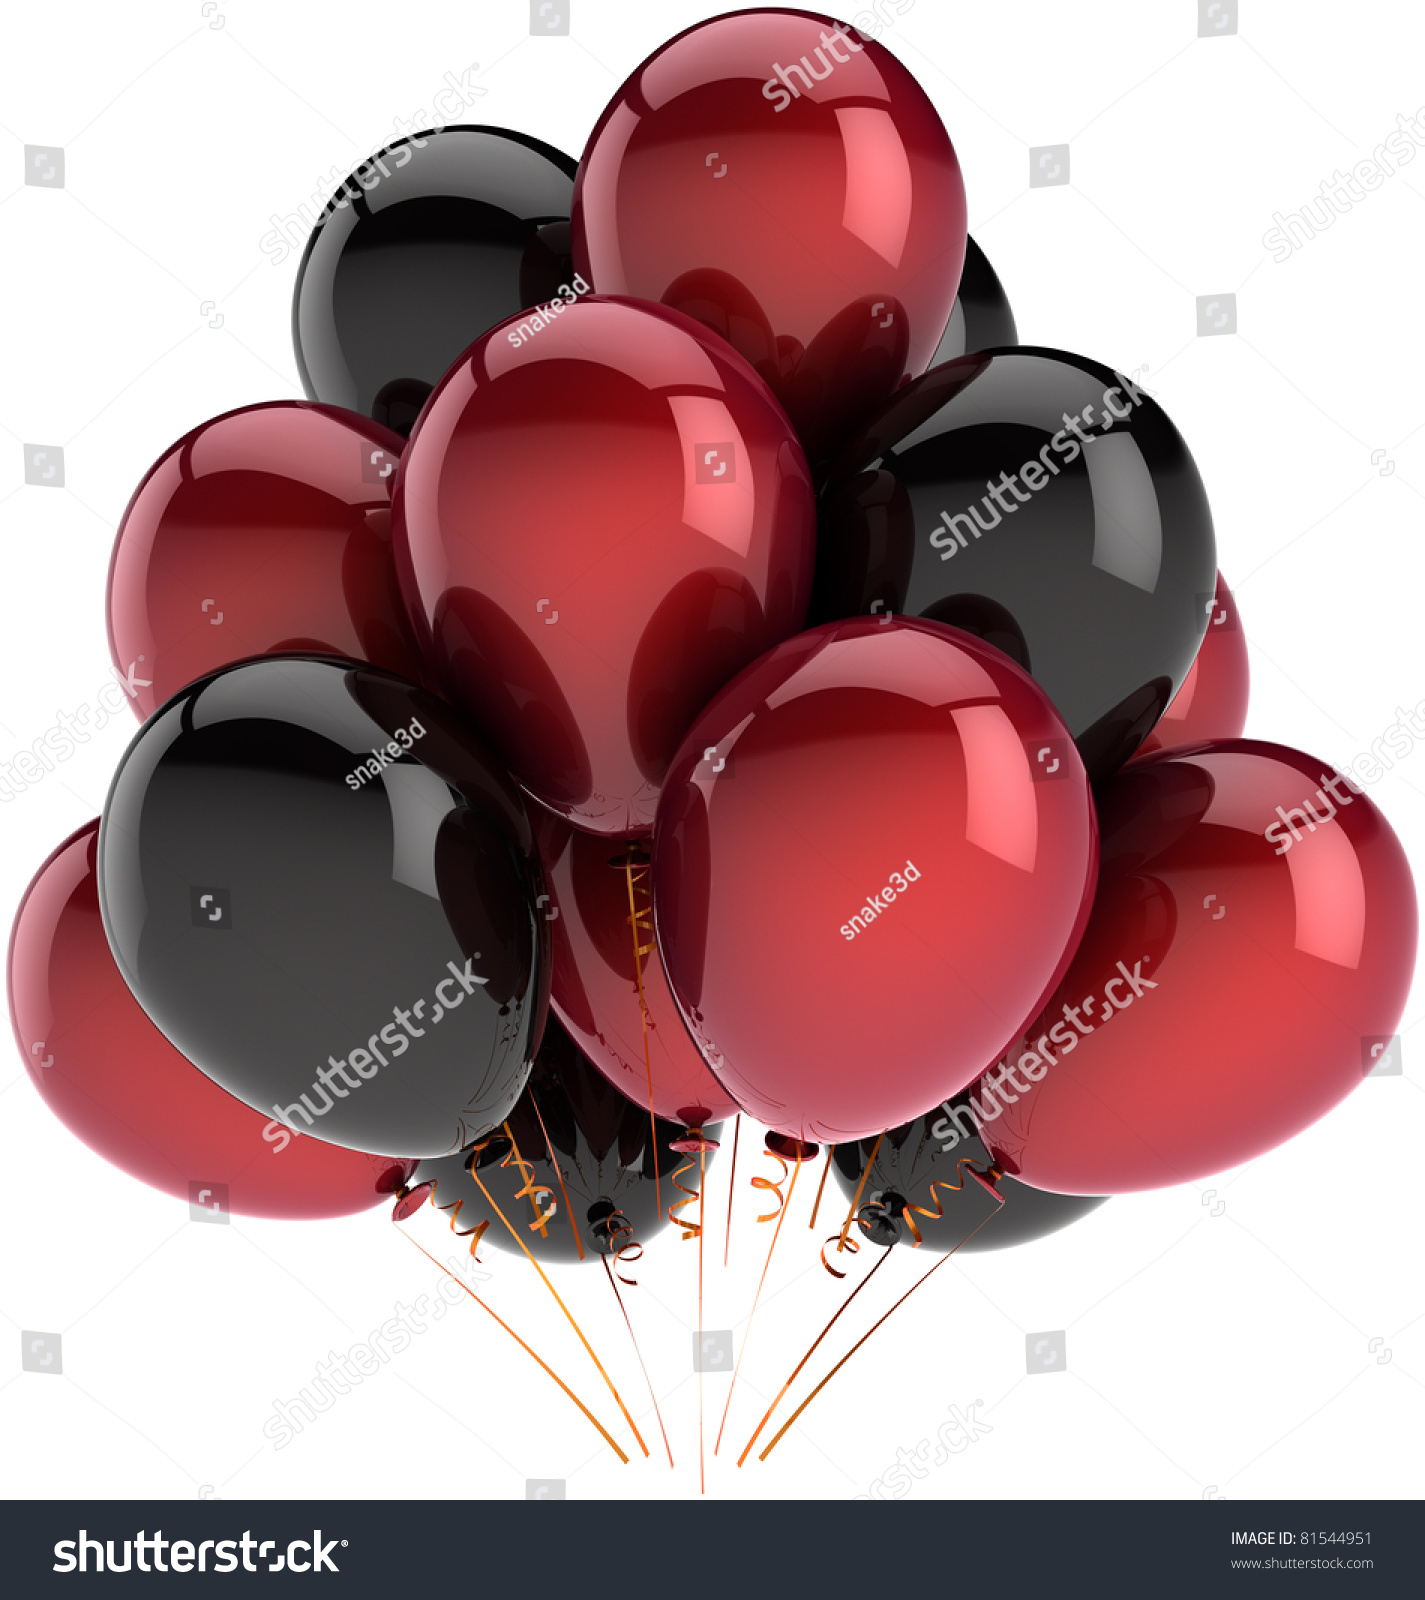 Party balloons black red happy birthday decoration